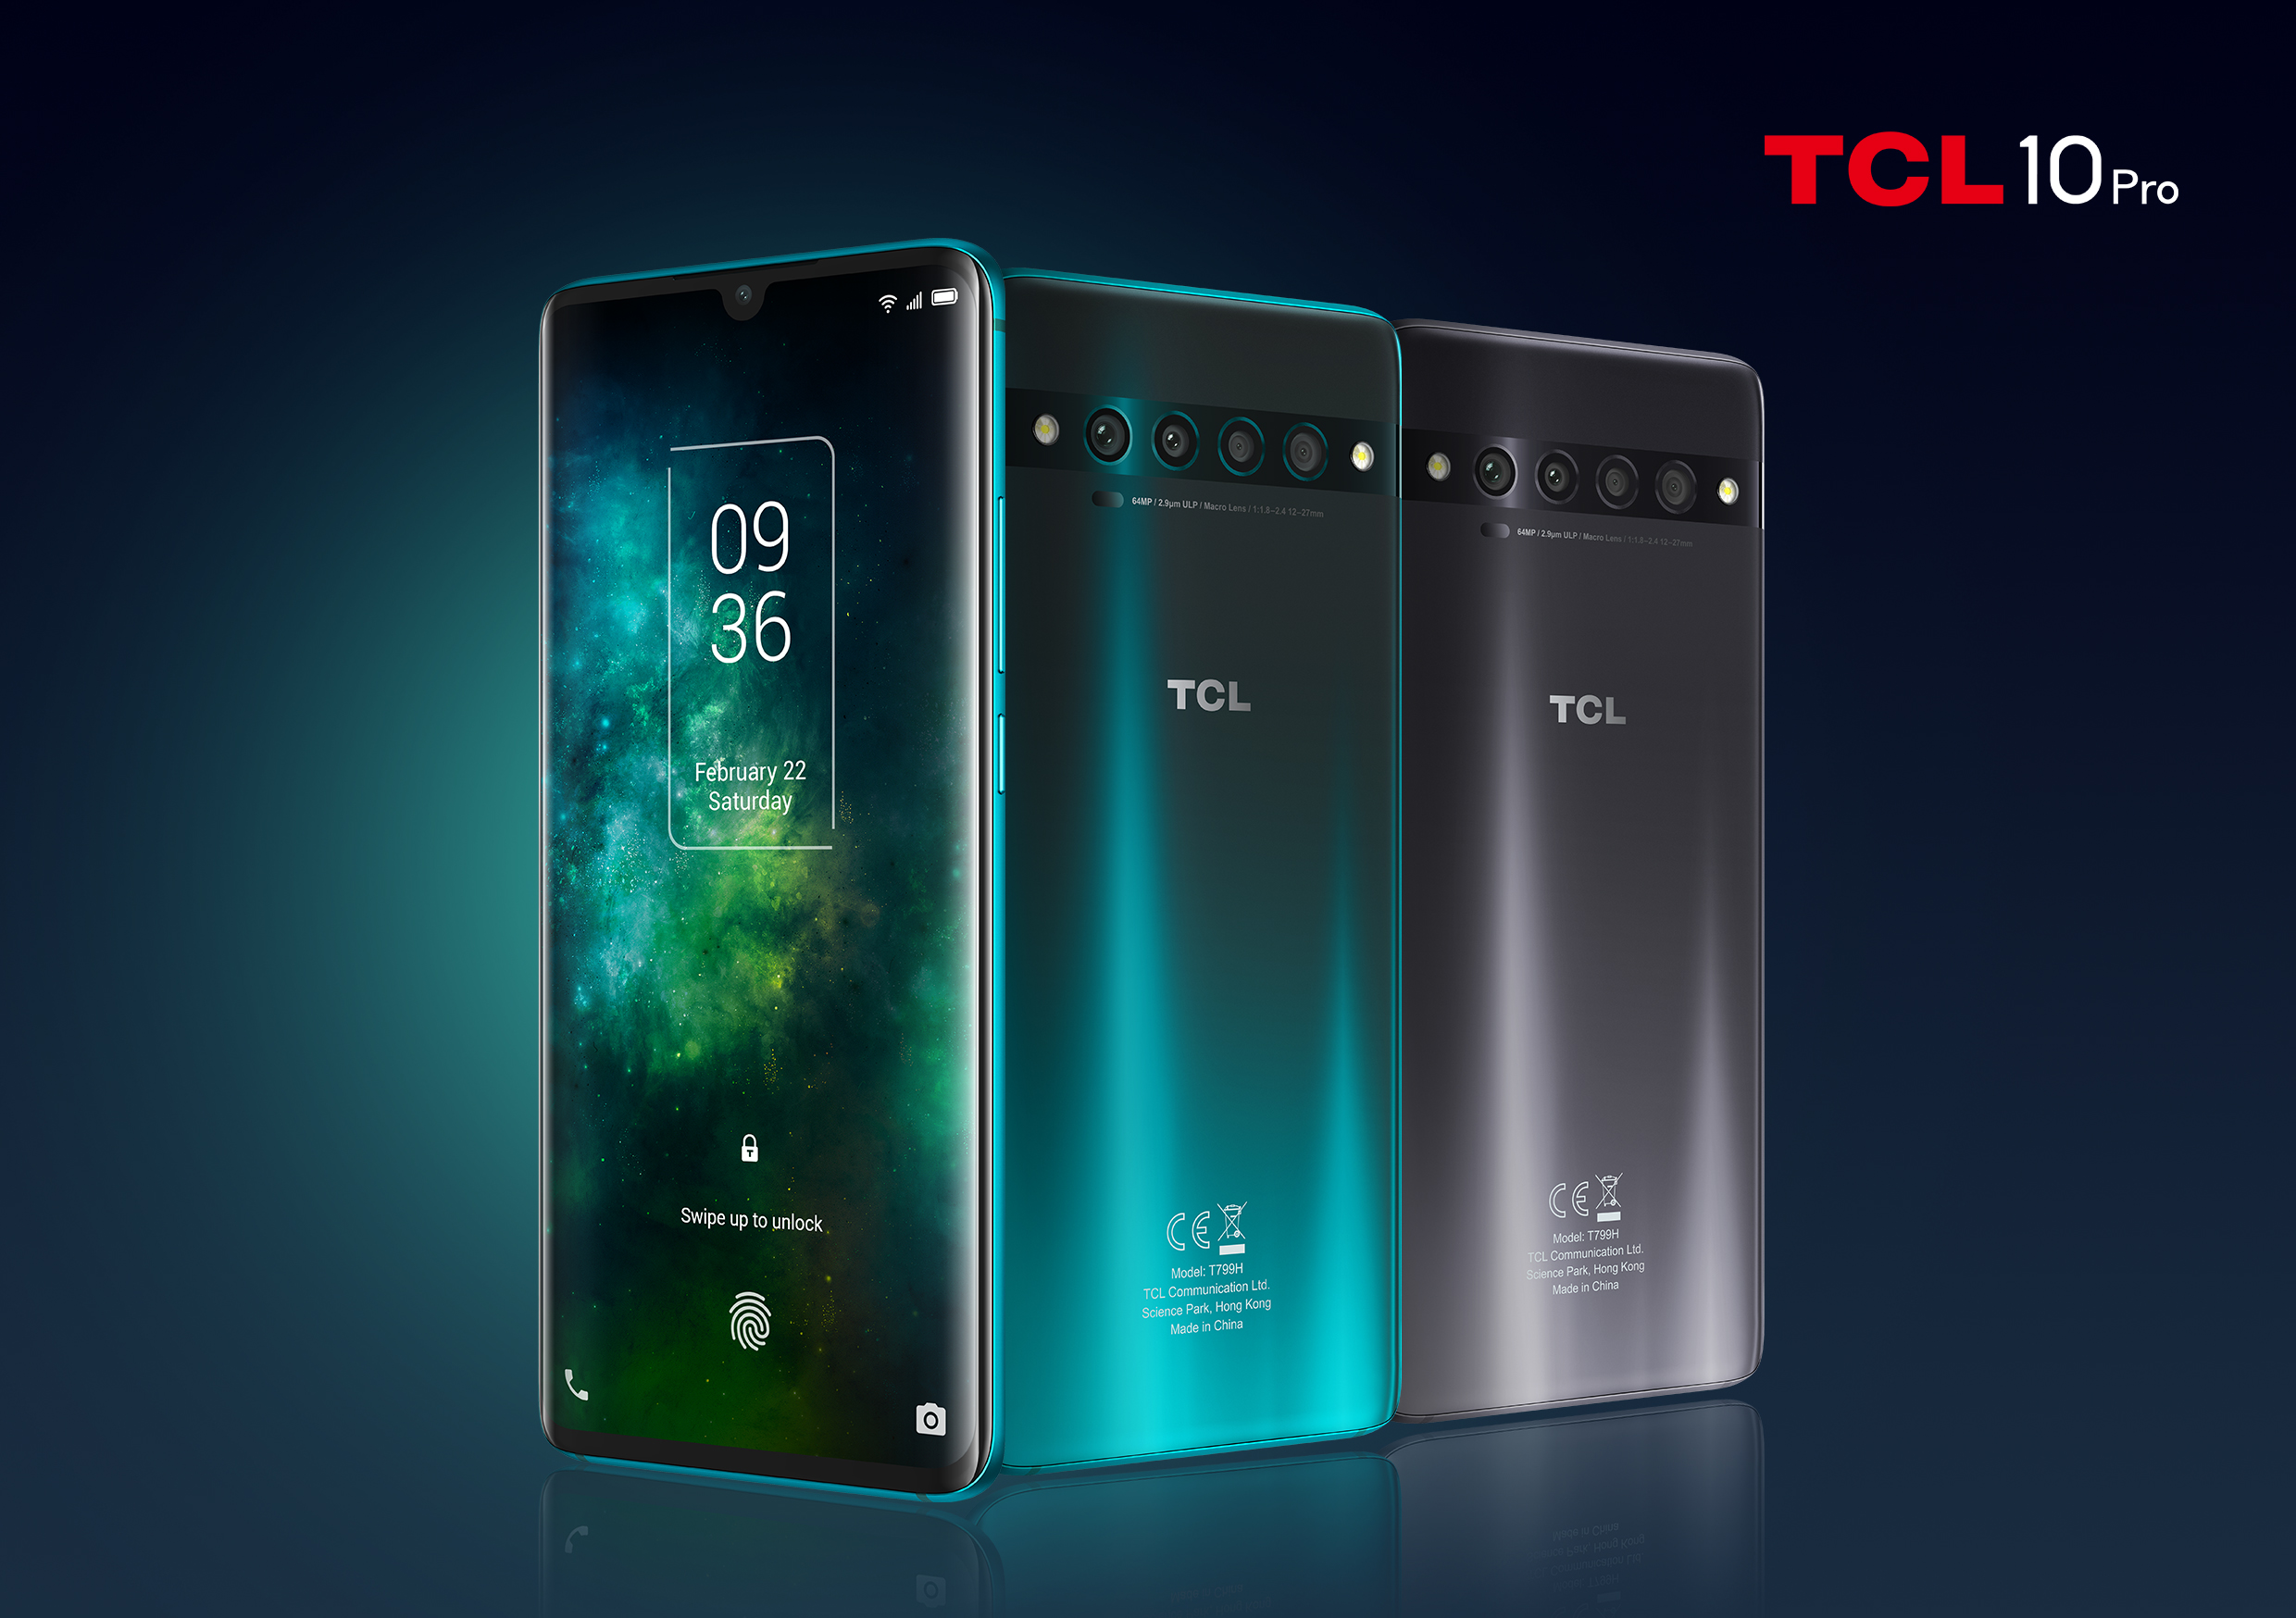 Review : TCL 10 Pro Smartphone - Reviews - What Mobile